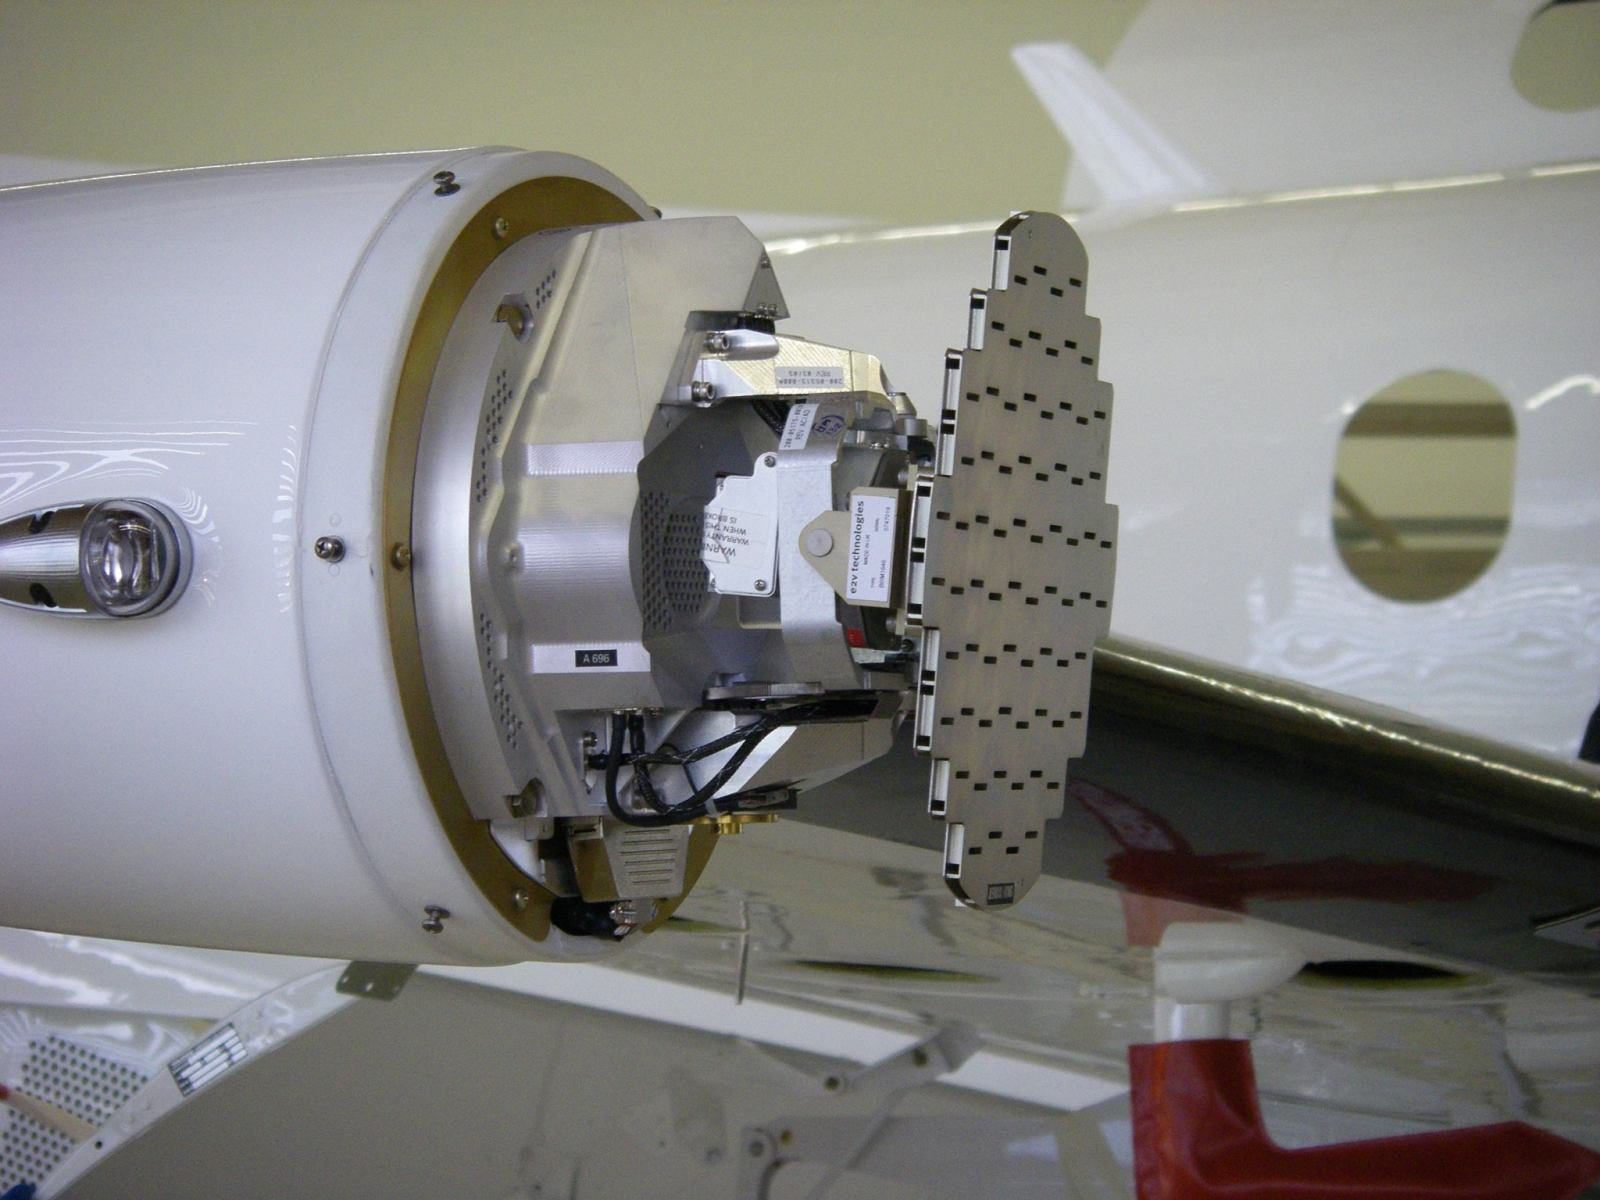 PC-12 RADAR Pod Exposed